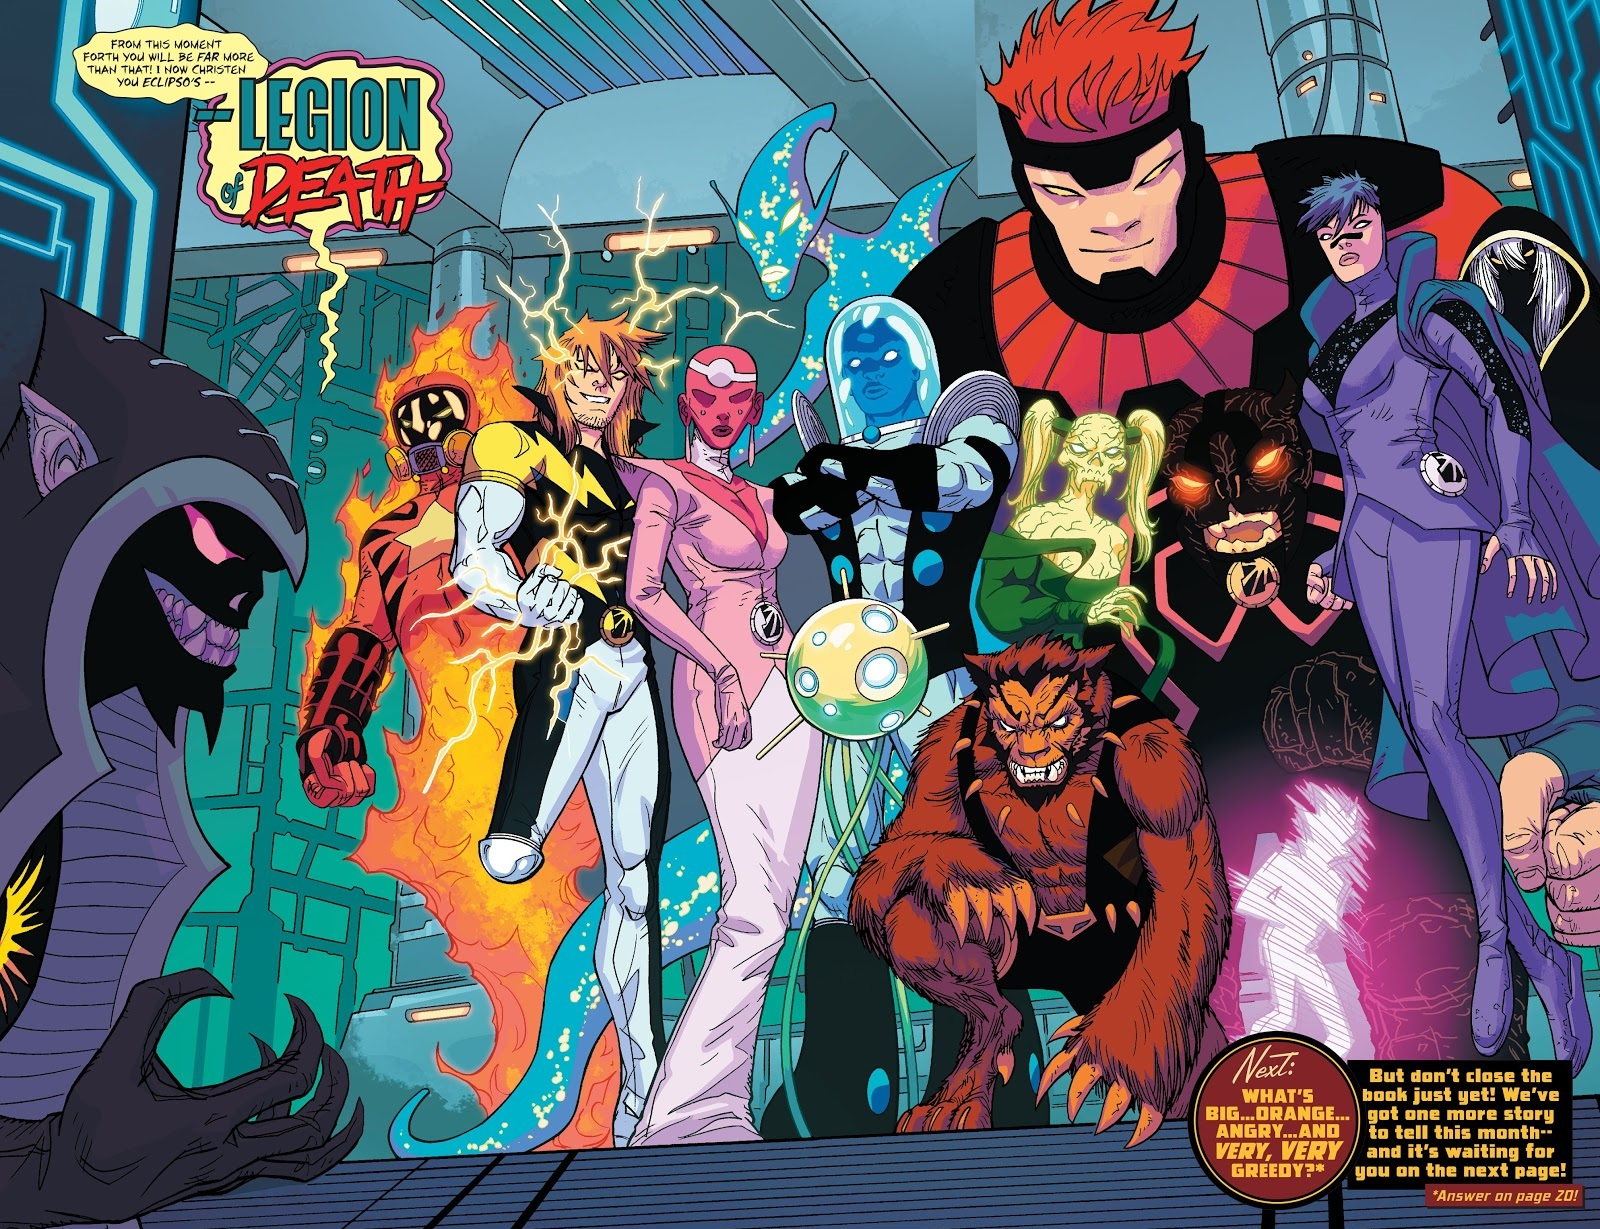 Legion of Death (Justice League 3000)